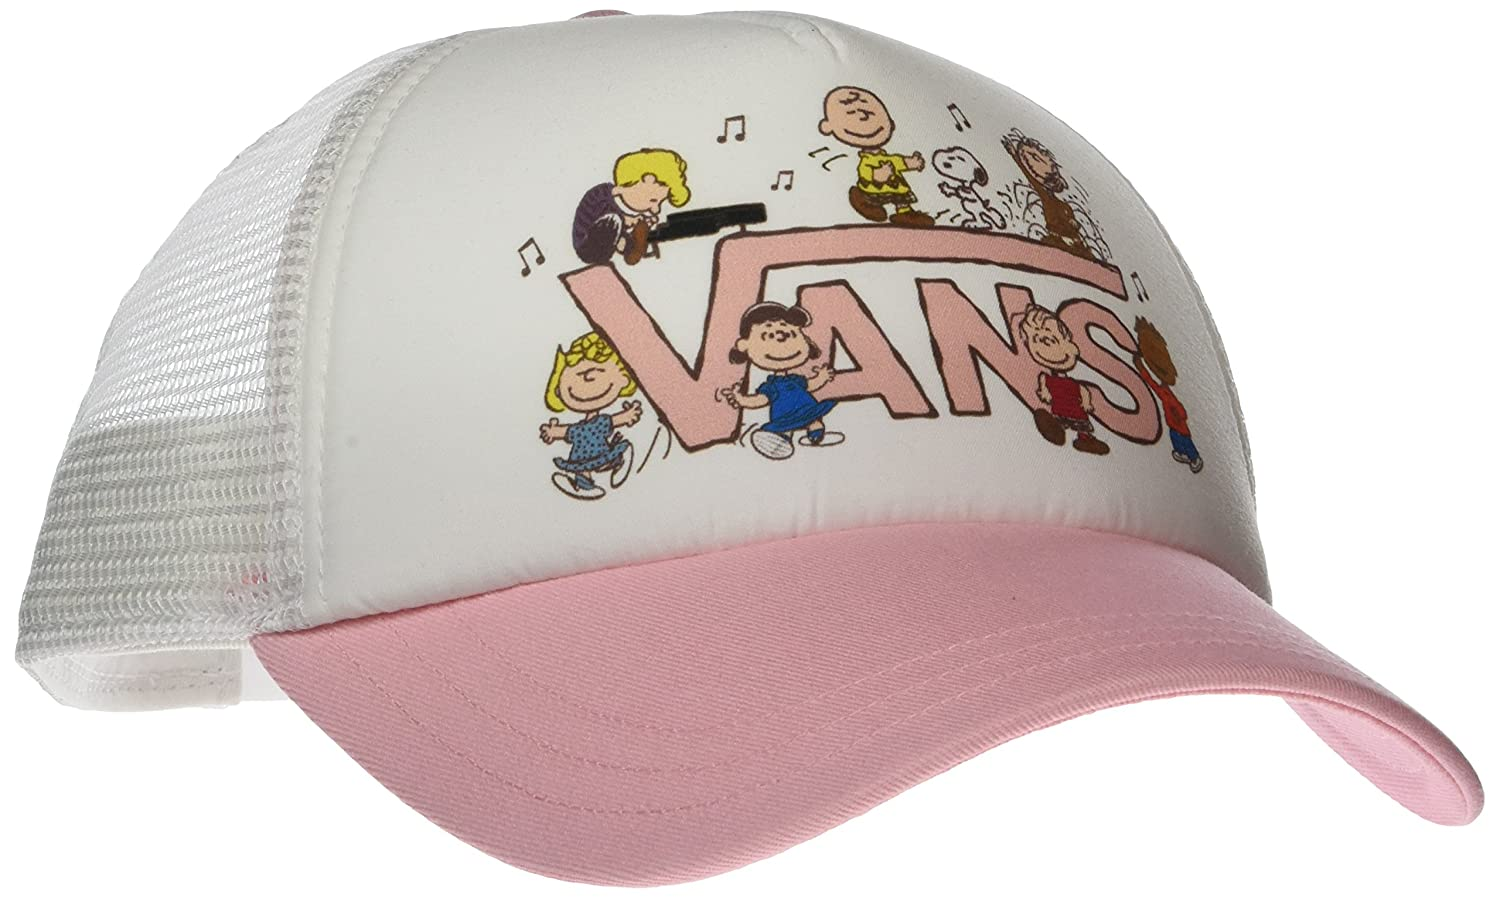 8273b5074a Vans Off The Wall Women s Peanuts Dance Party Trucker Hat Cap - White Pink  at Amazon Women s Clothing store